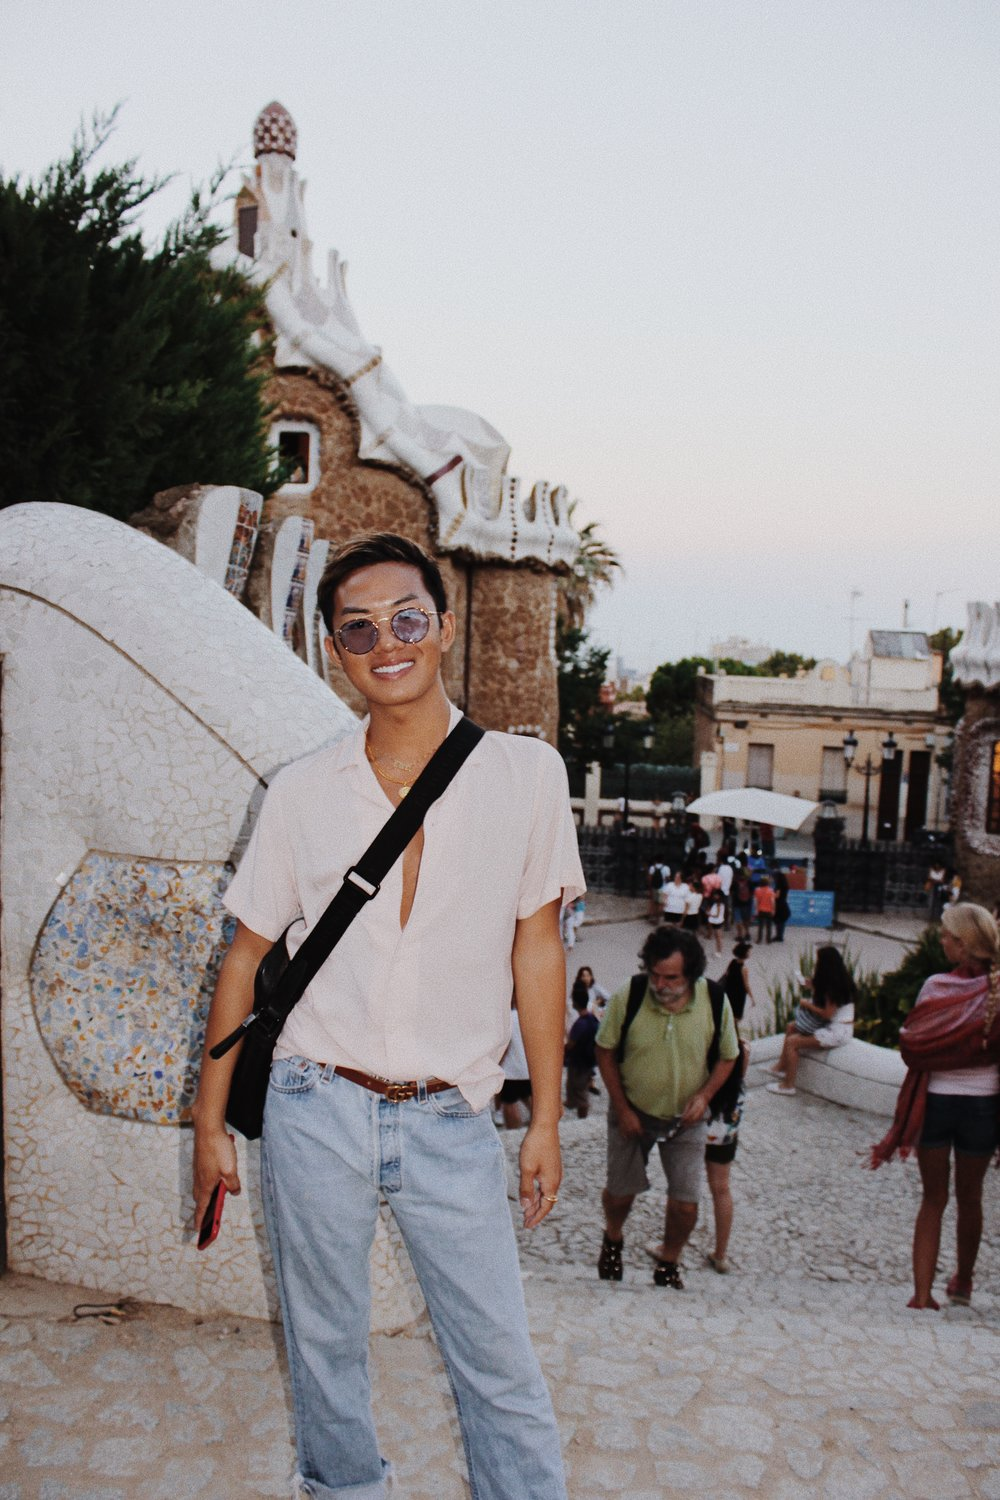 Shirt: Zara, Jeans: Vintage Levi's, Belt: Gucci, Sunglasses: Crap Eyewear (linked above), Bag: Burberry